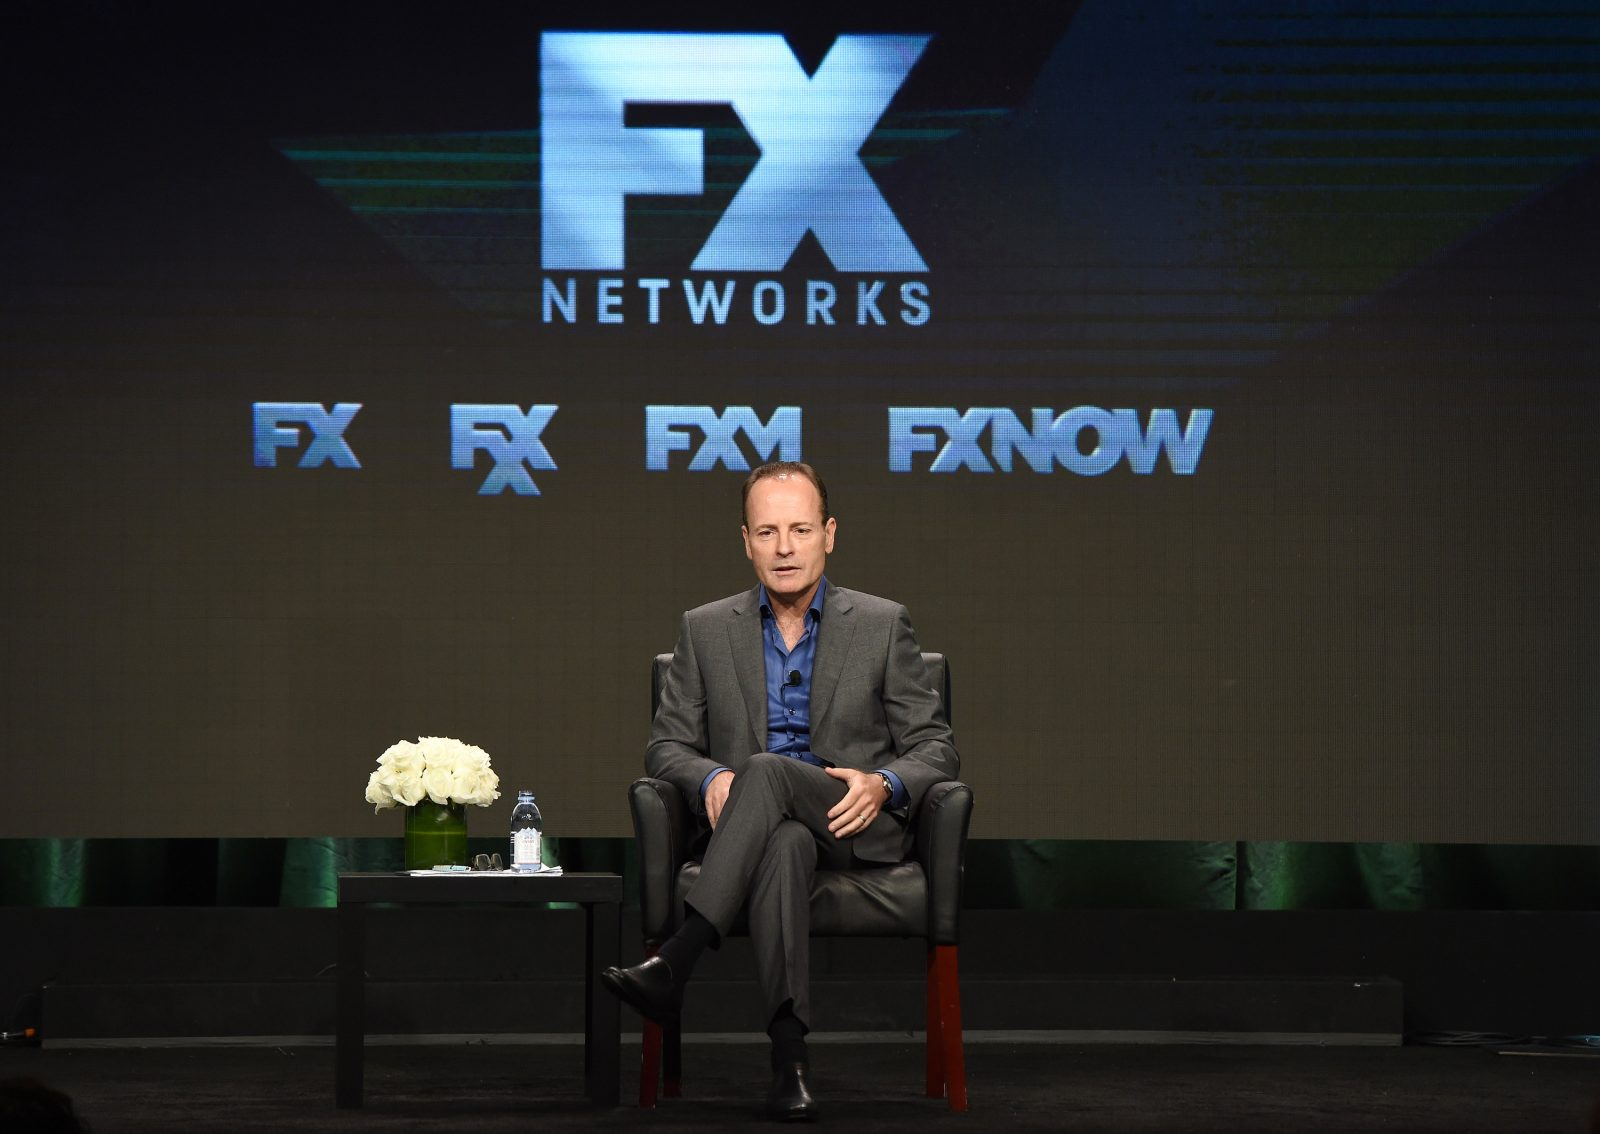 FX follows AMC's step, will launch an ad-free paid streaming service exclusively for Comcast subscribers